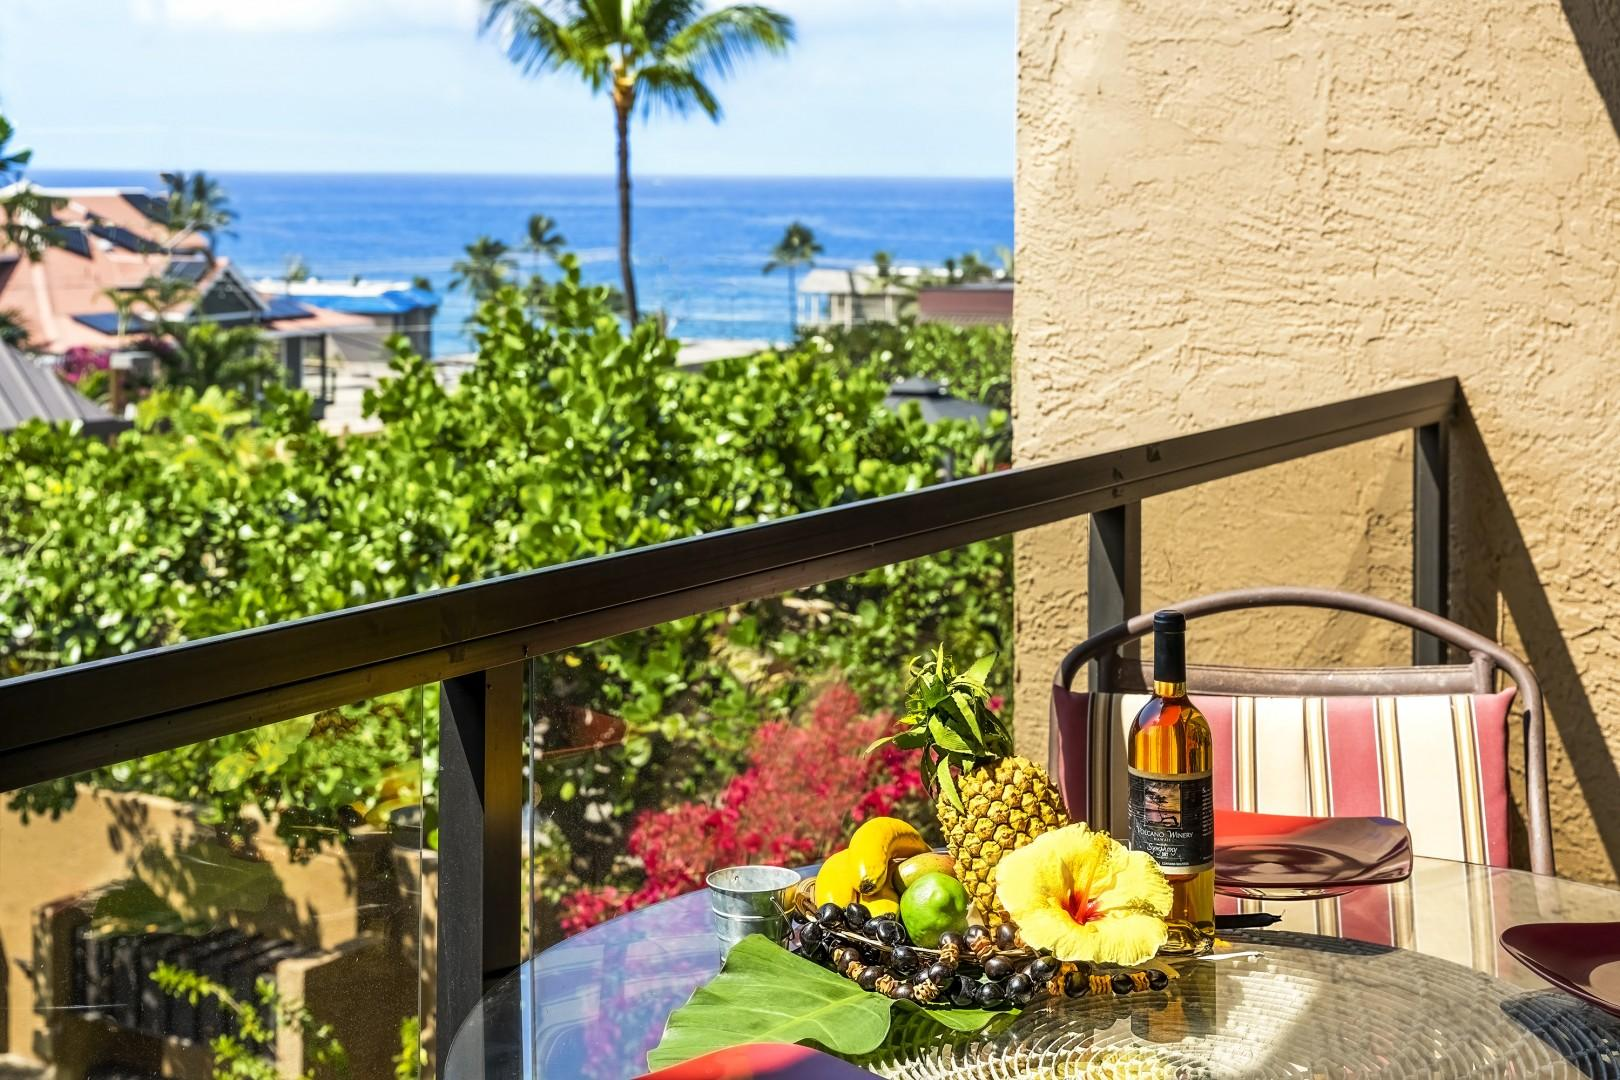 Enjoy dining on the Lanai with the ocean backdrop!